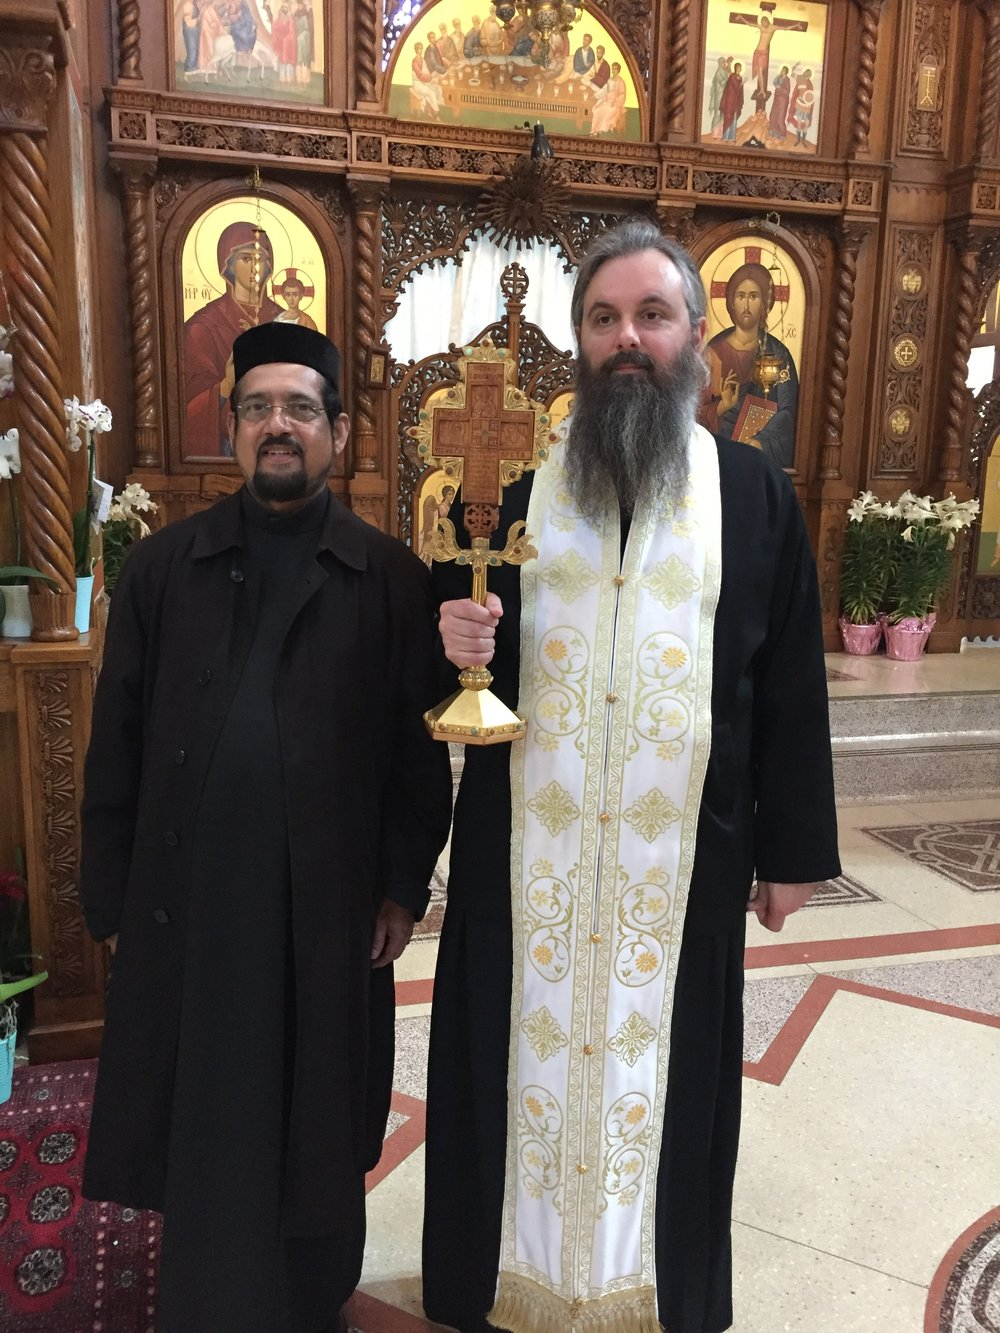 Hieromonk Serafim Baltic with Rev Fr Daniel George - field trip to New Gracanica Monastery on May 6th, 2017